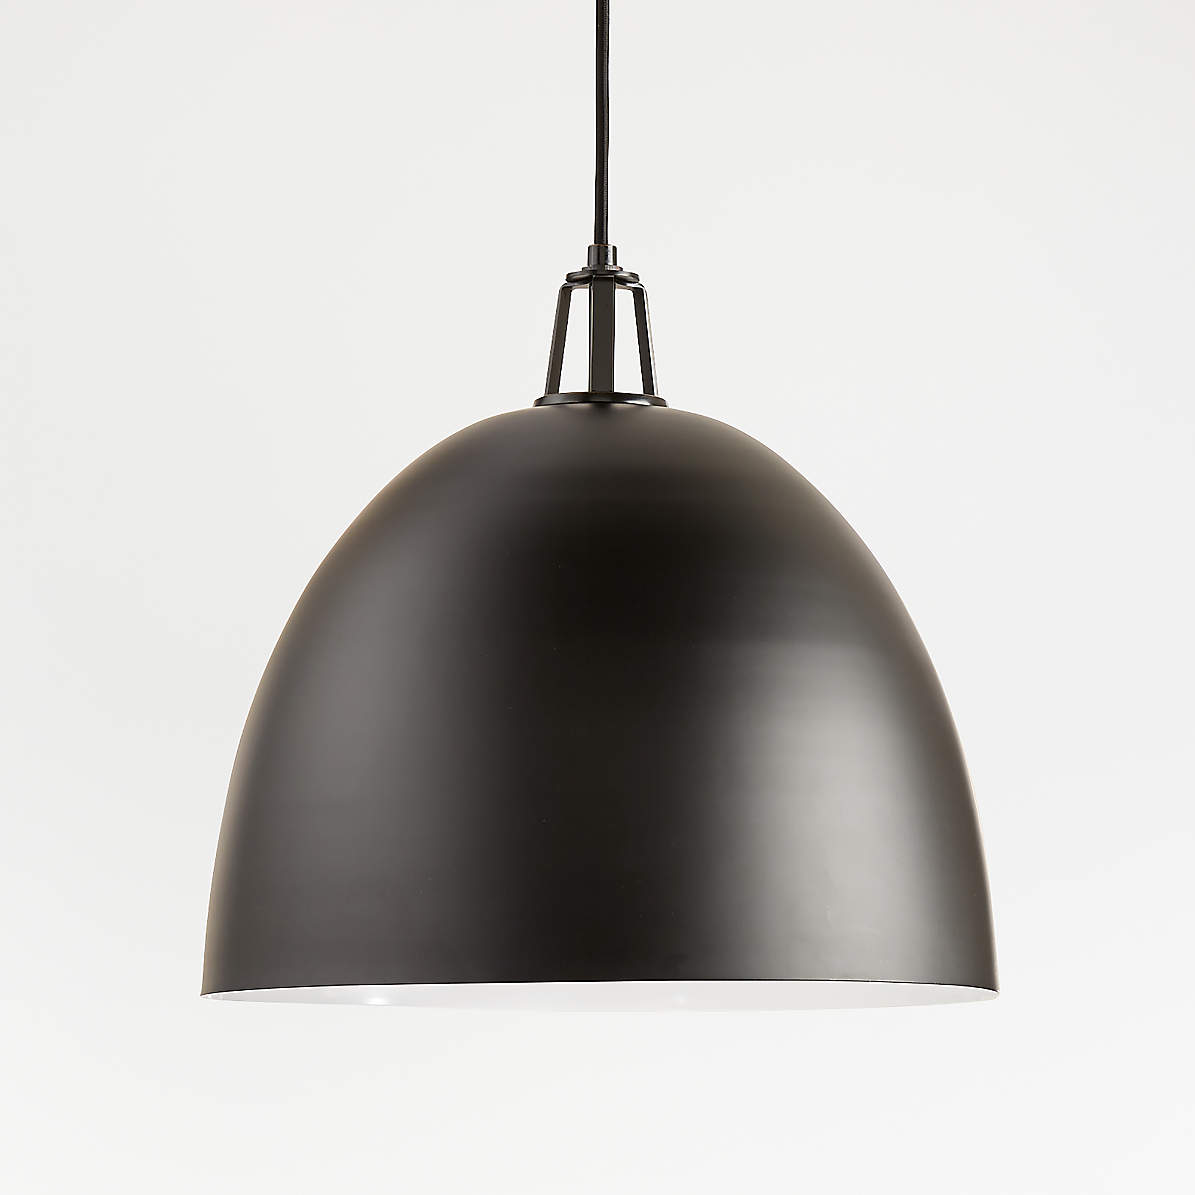 Maddox Black Dome Pendant Large With Black Socket Reviews Crate And Barrel